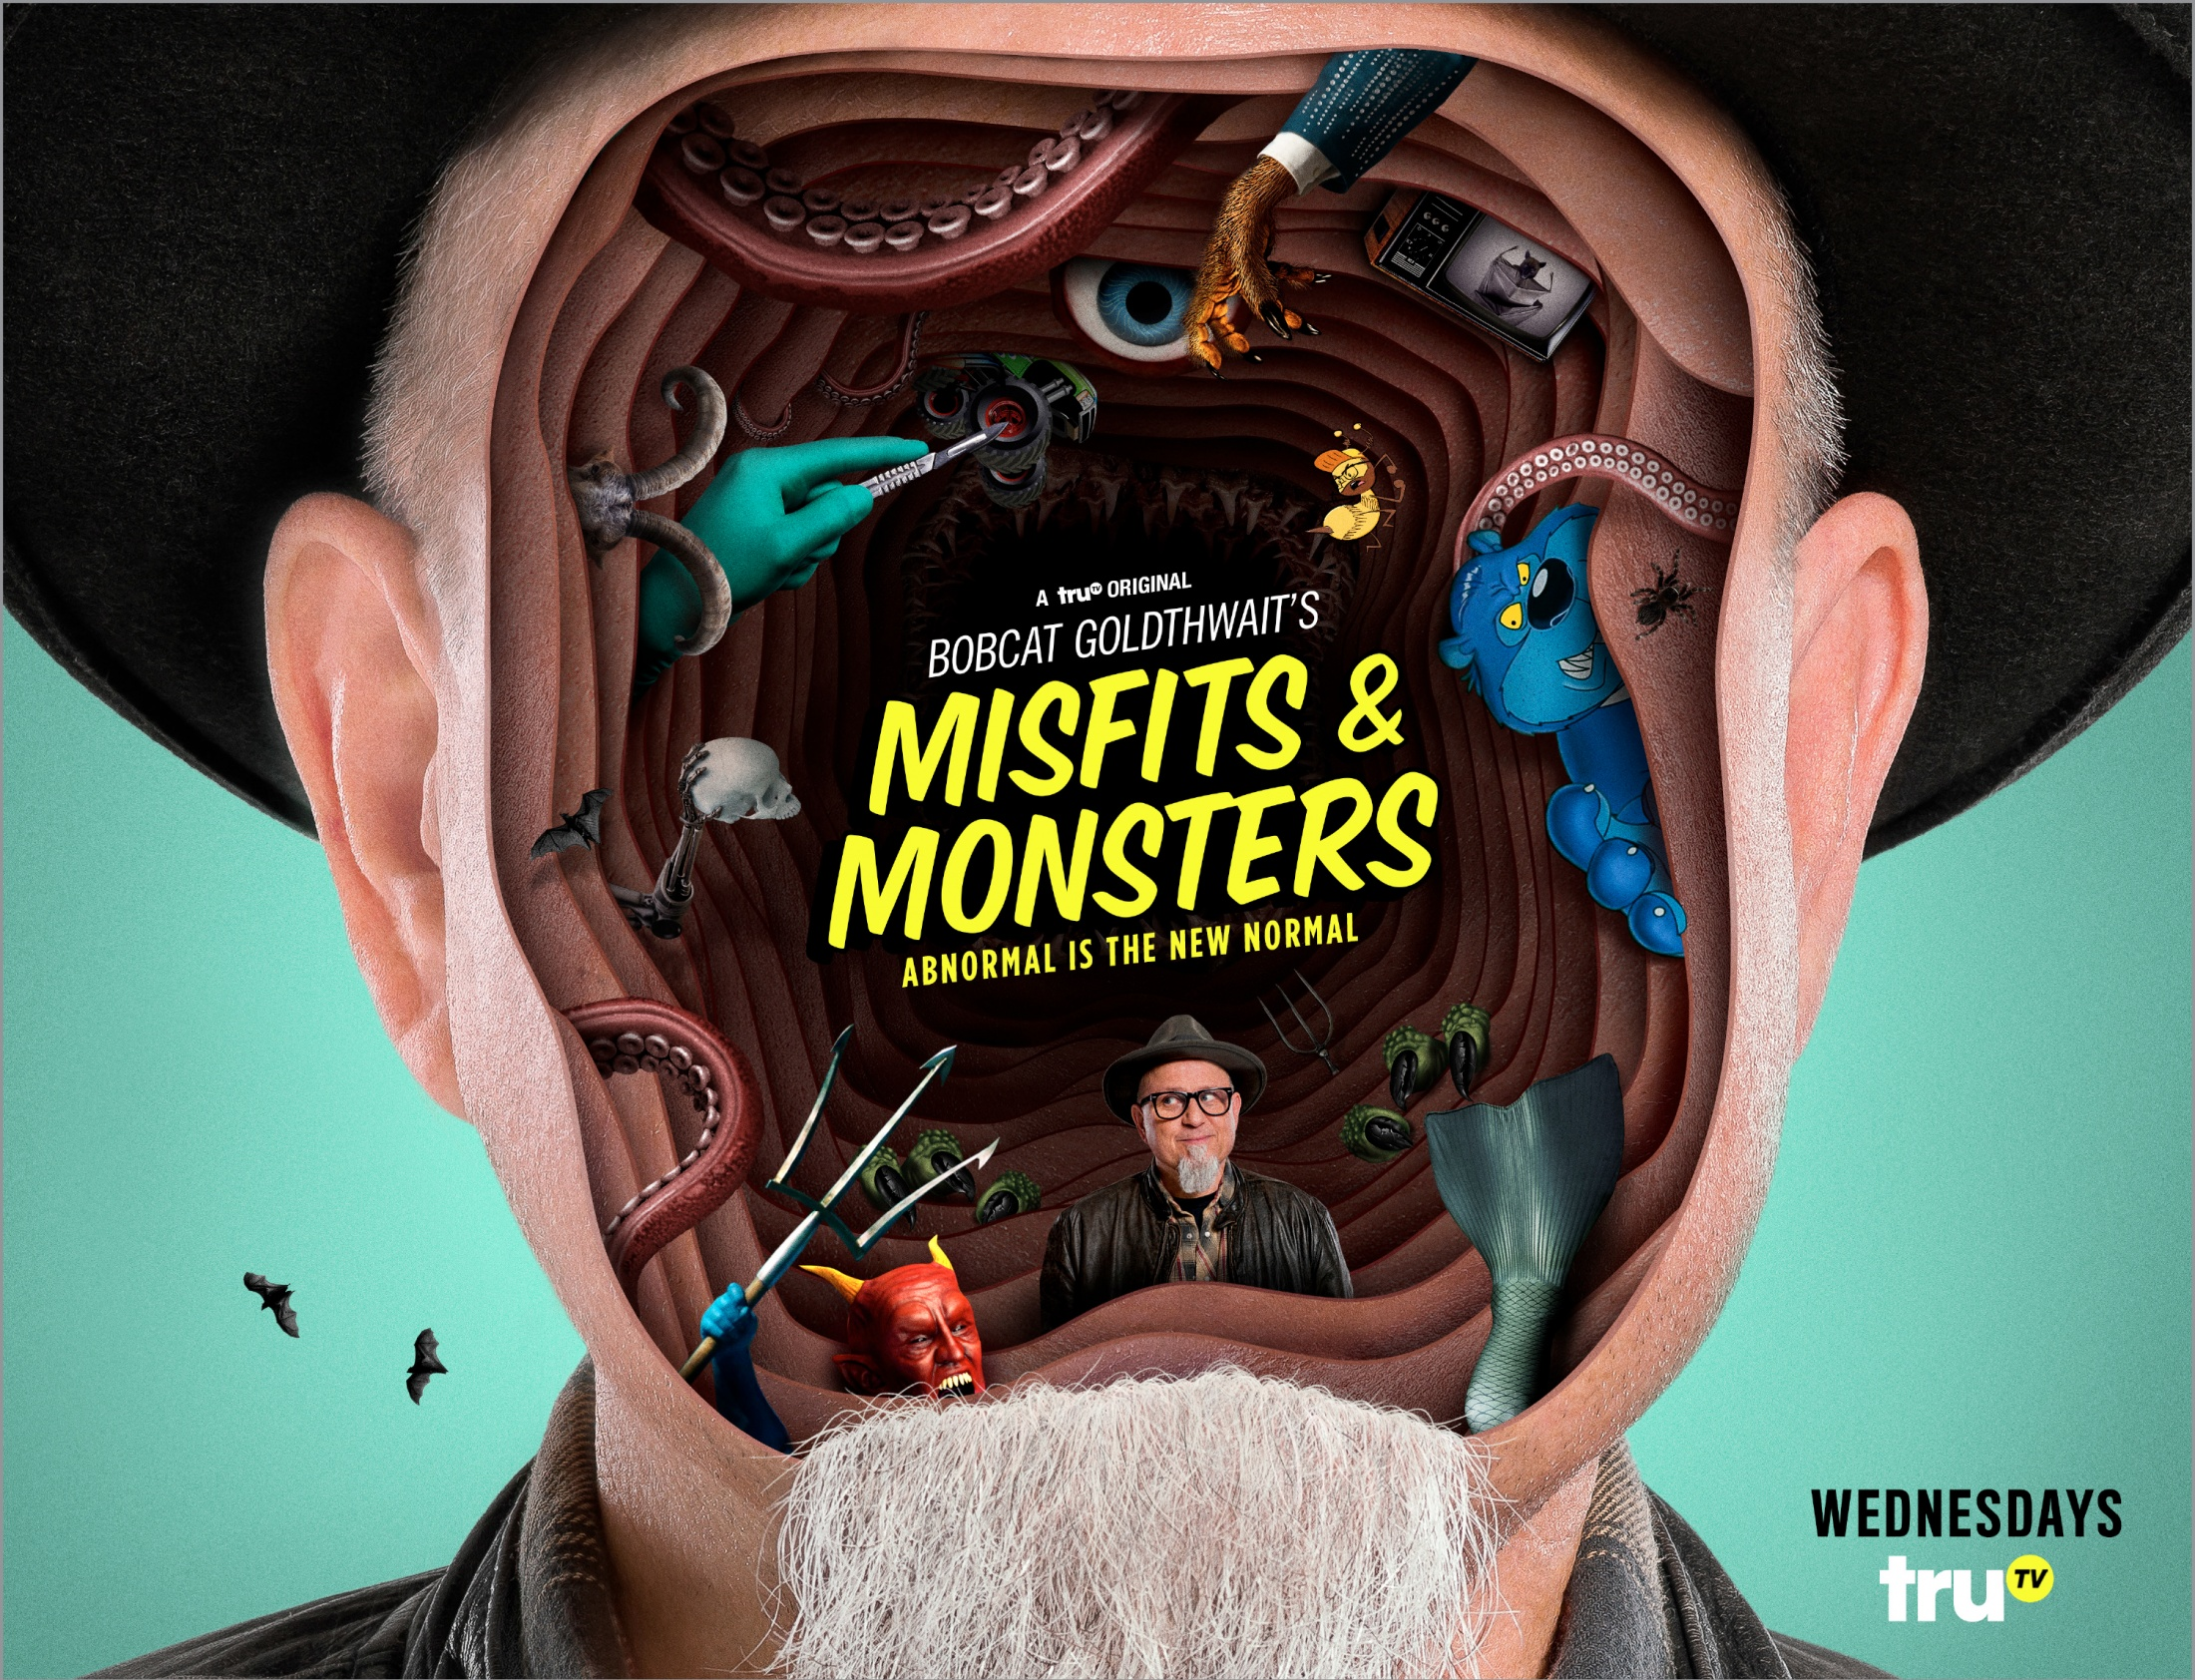 Thumbnail for Bobcat Goldthwait's Misfits and Monsters